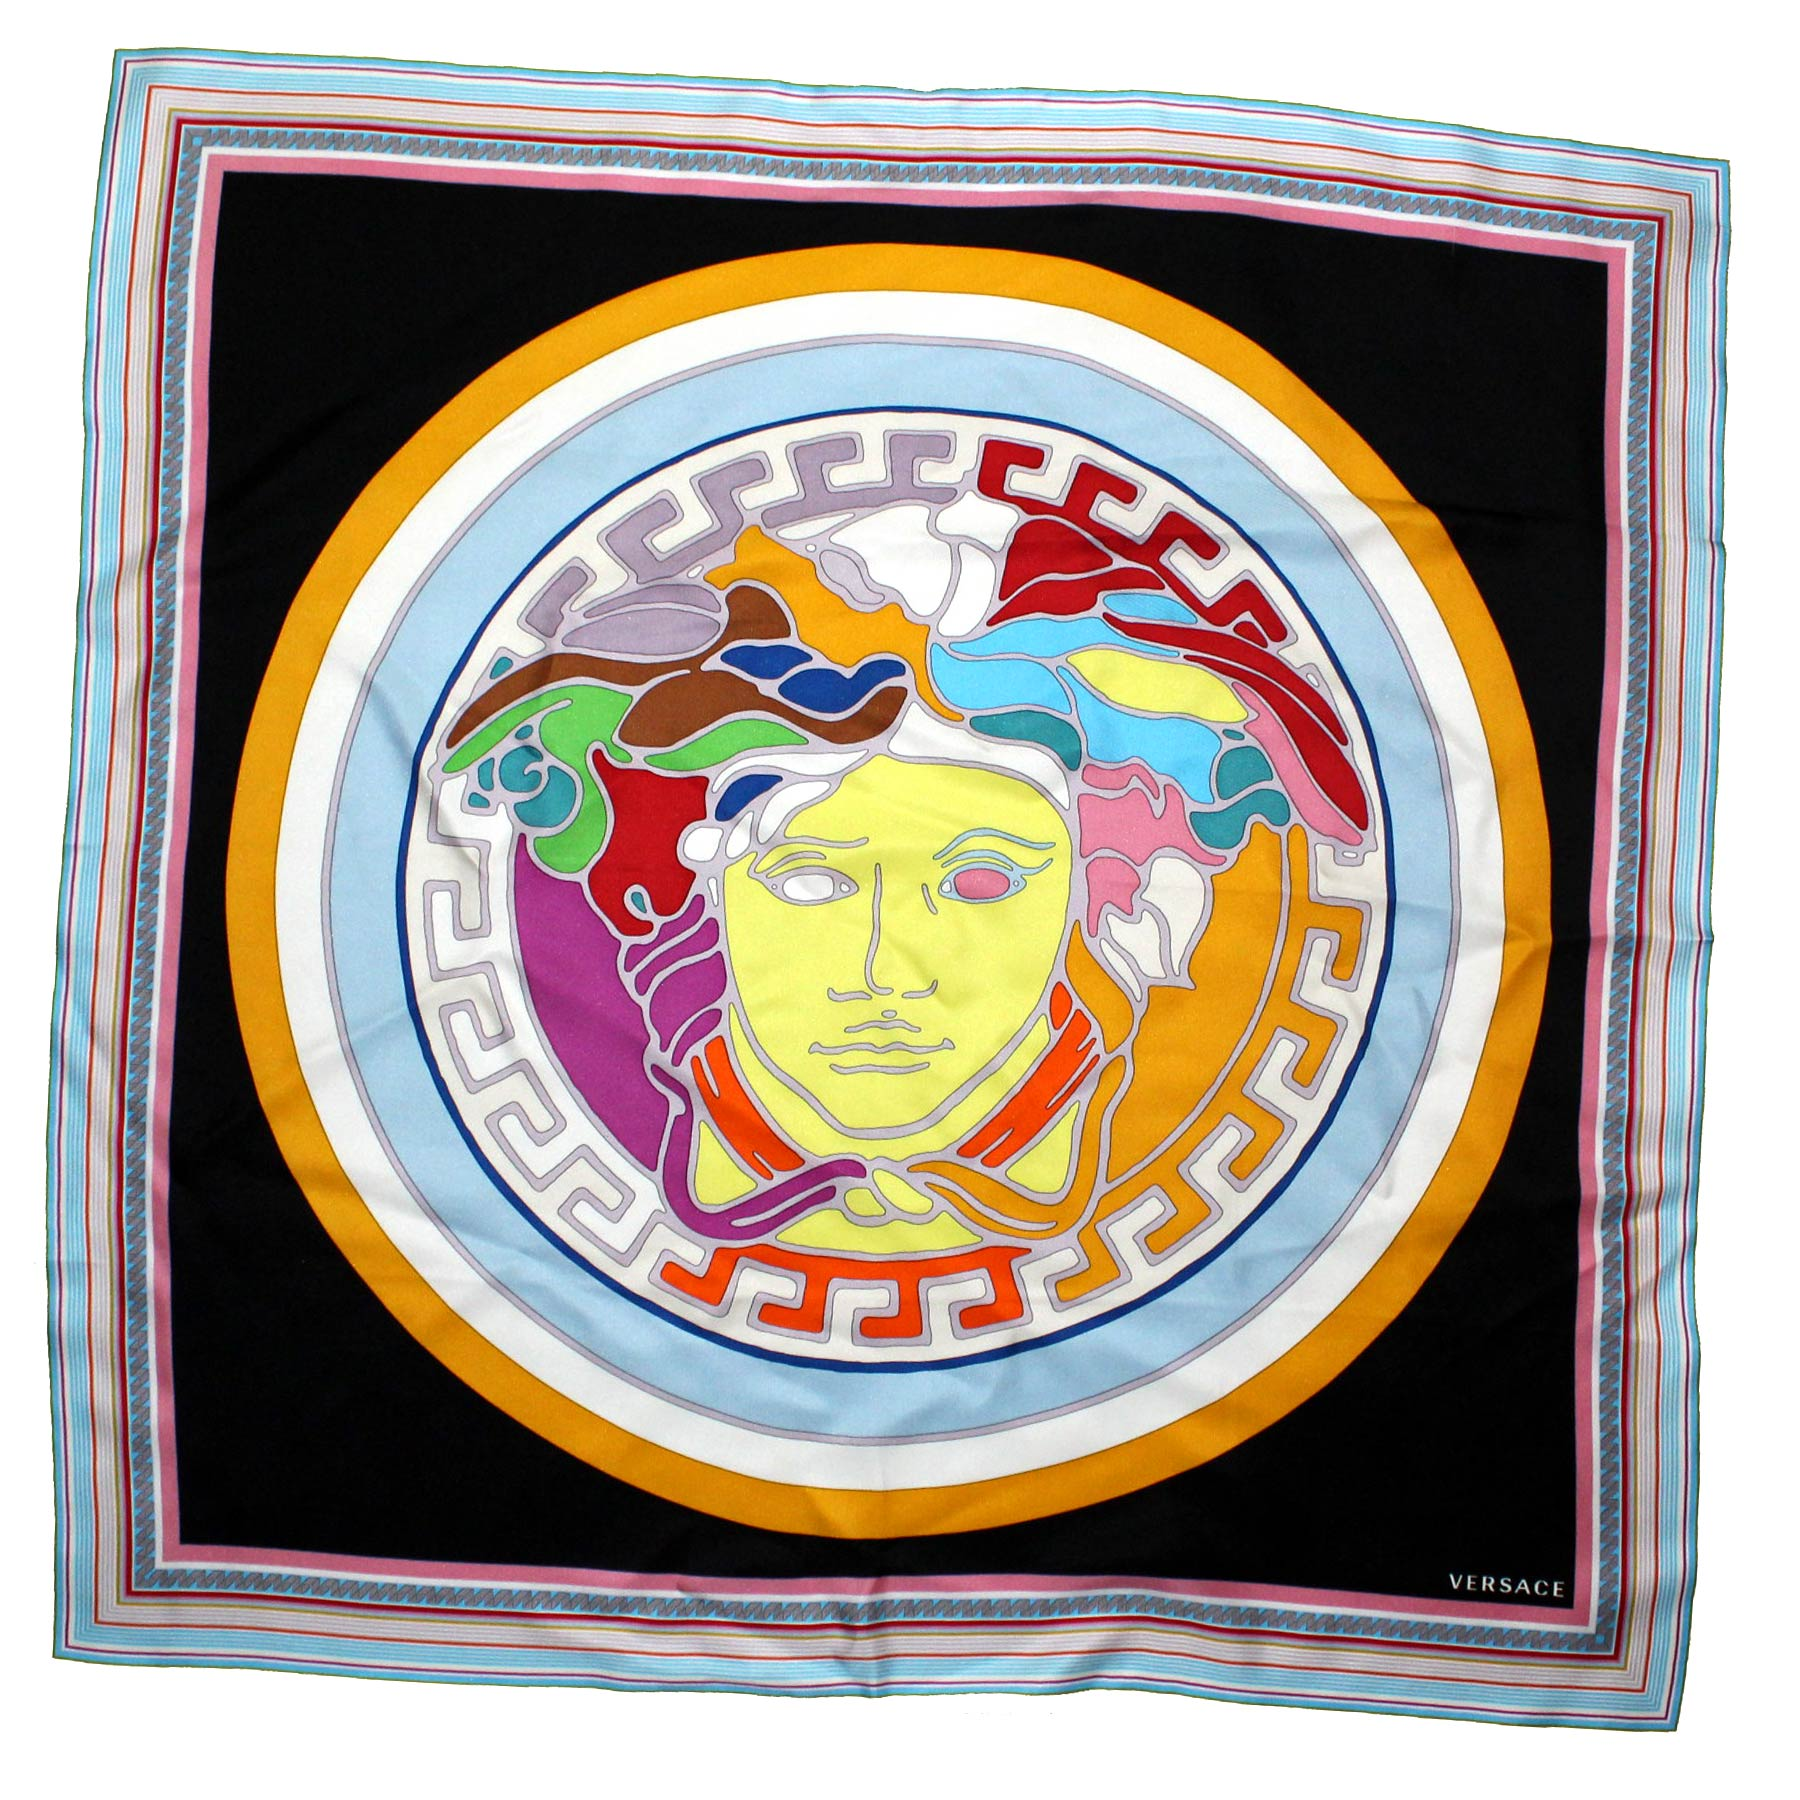 Versace Scarf Medusa - Large Twill Silk Square Scarf